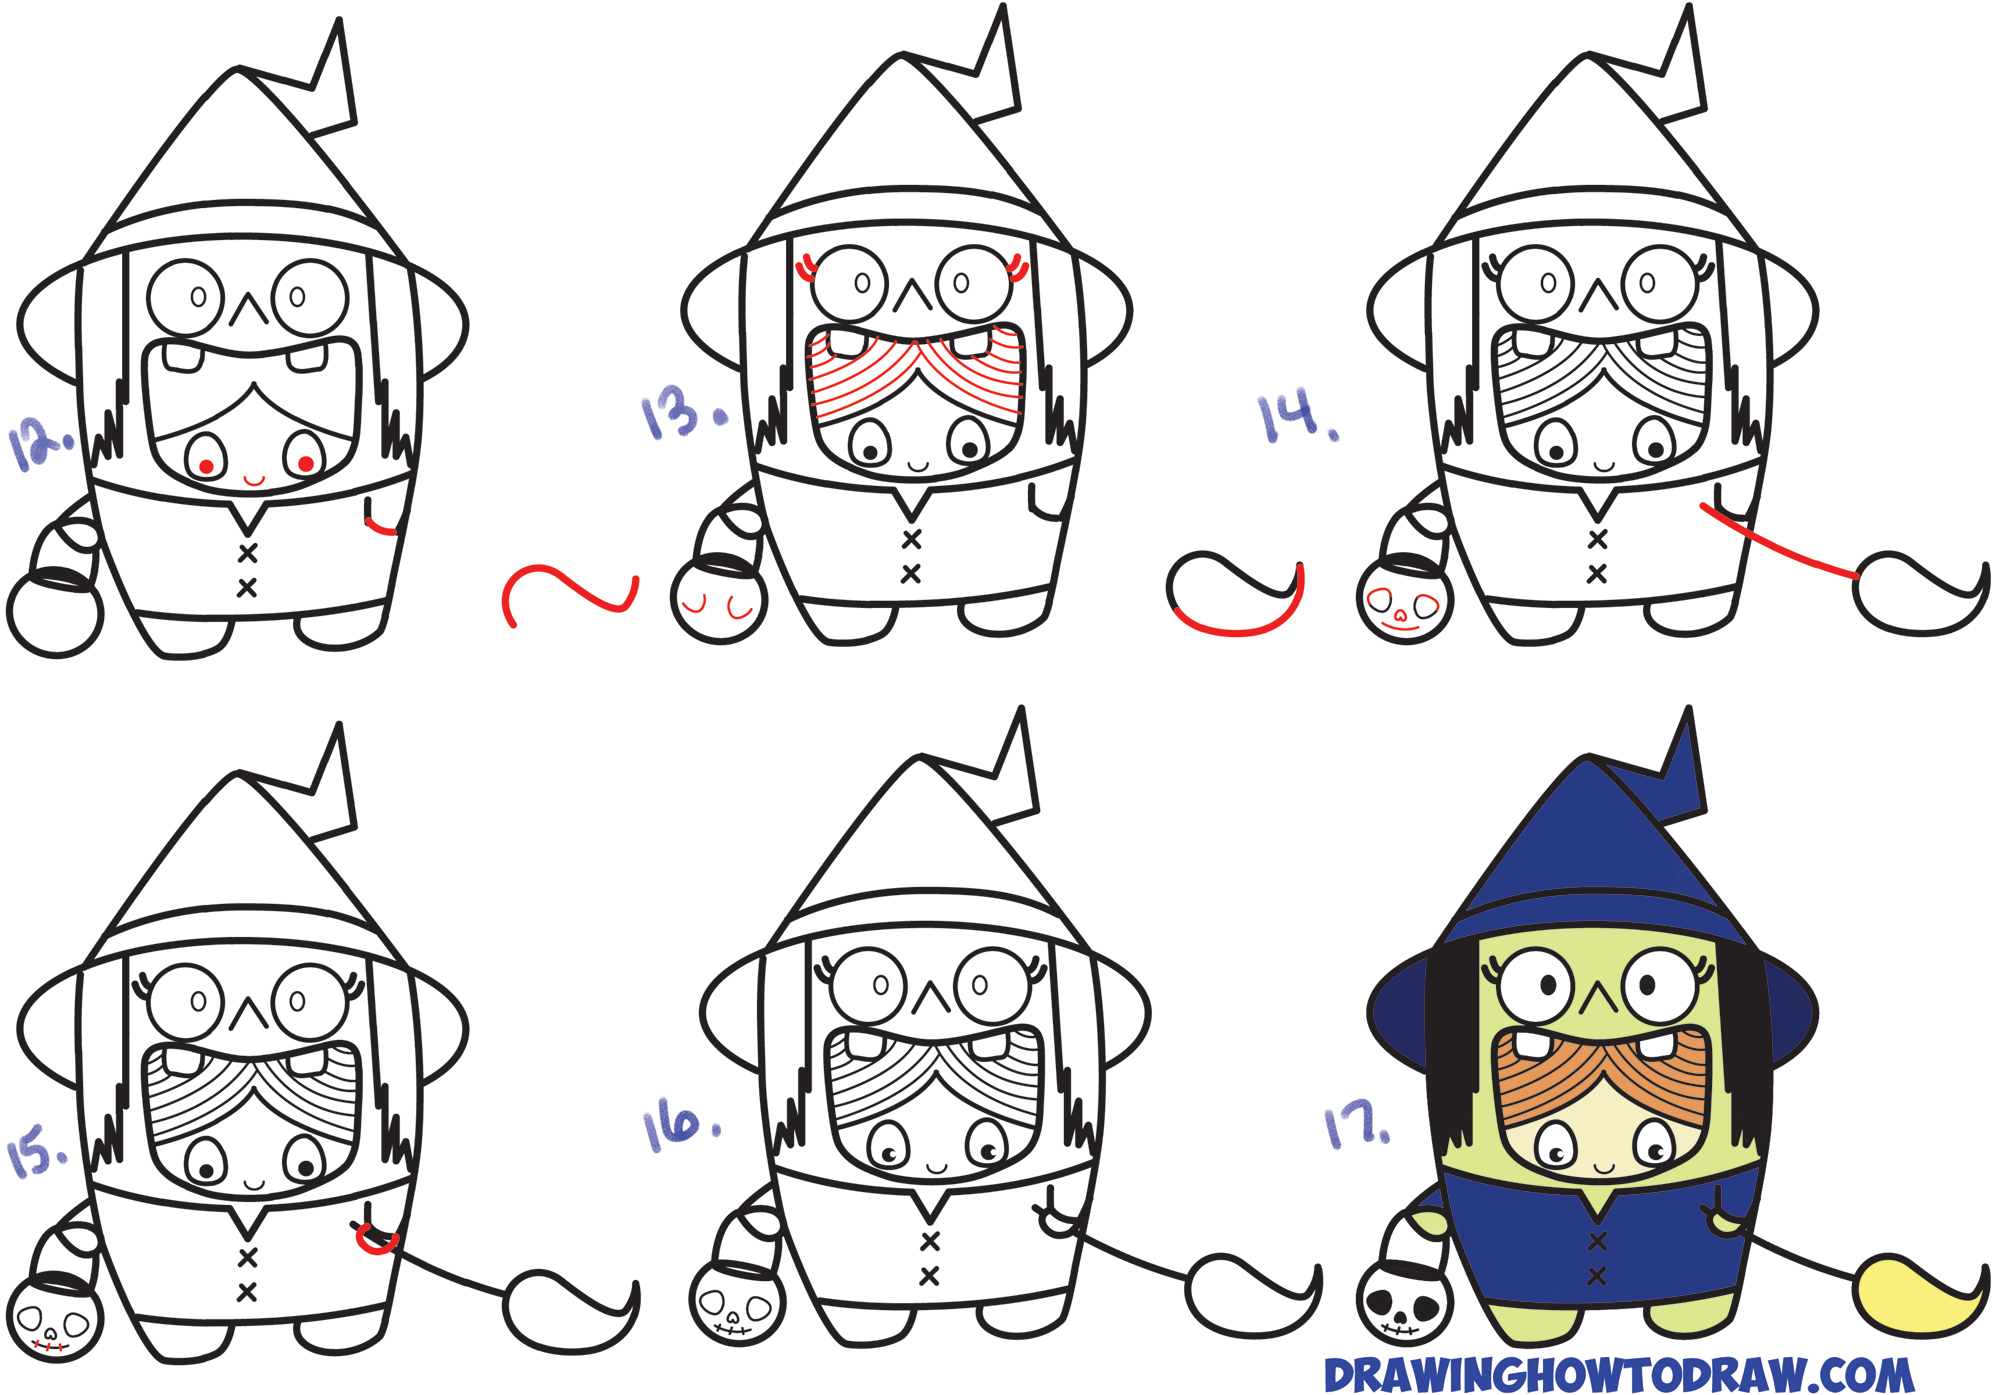 Learn How to Draw a Kid in a Halloween Witch Costume (Cute Kawaii) Simple Steps Drawing Lesson for Children & Beginners